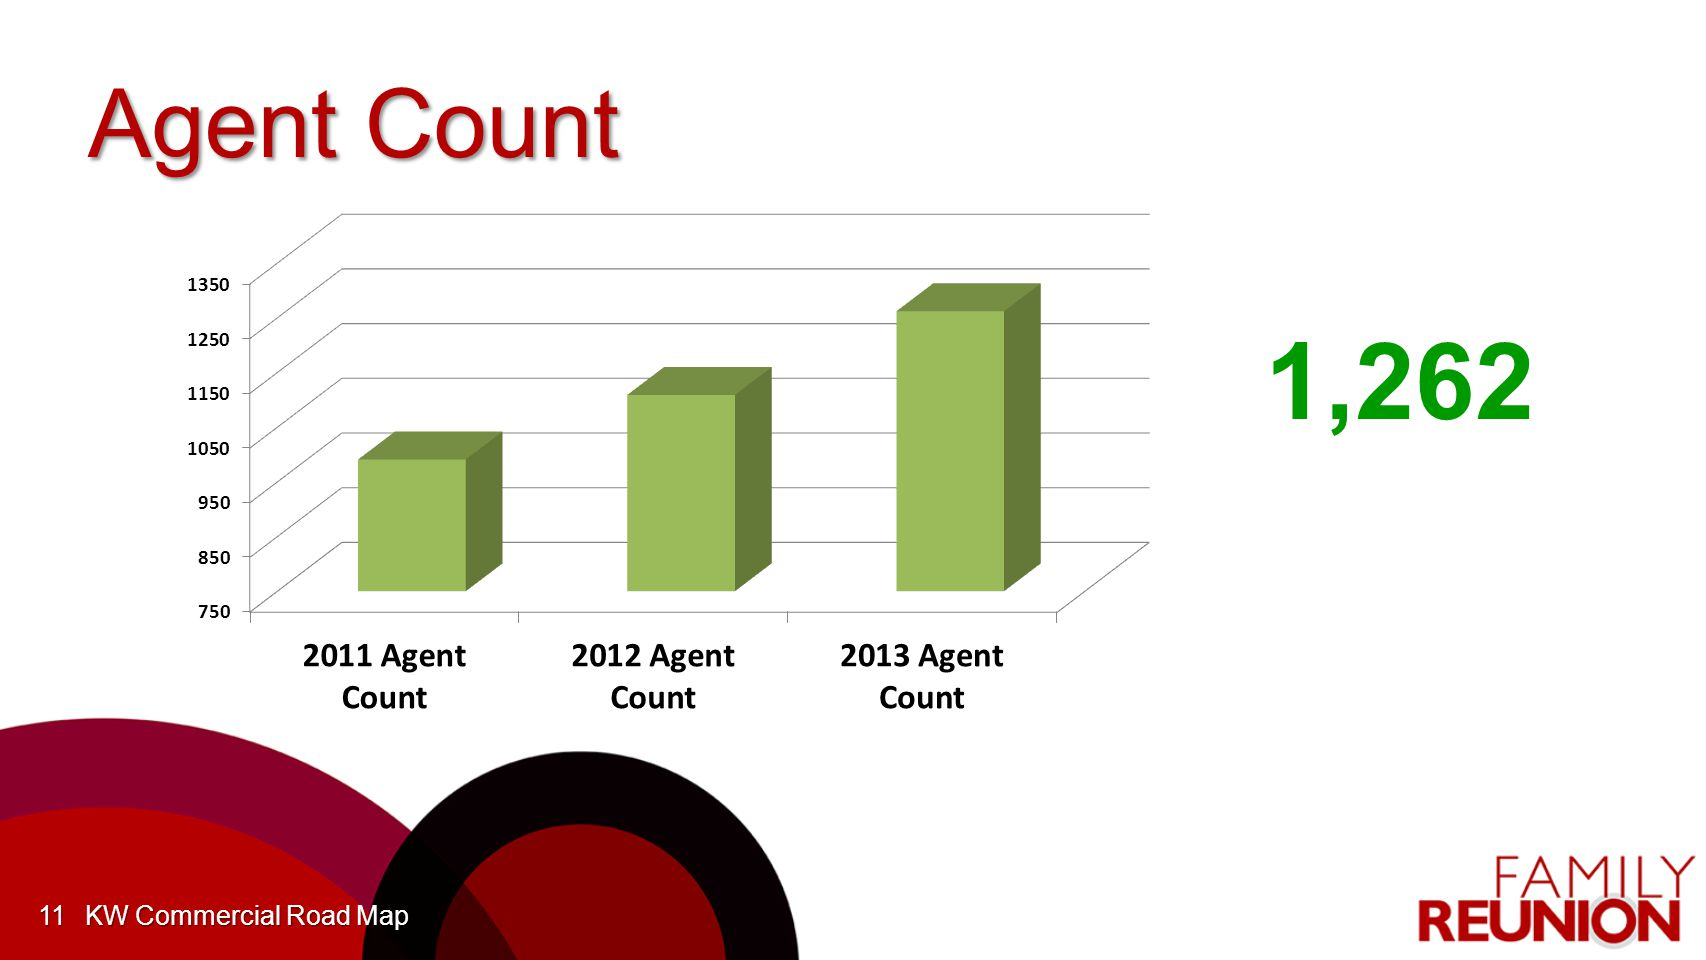 Agent Count KW Commercial Road Map11 1,262